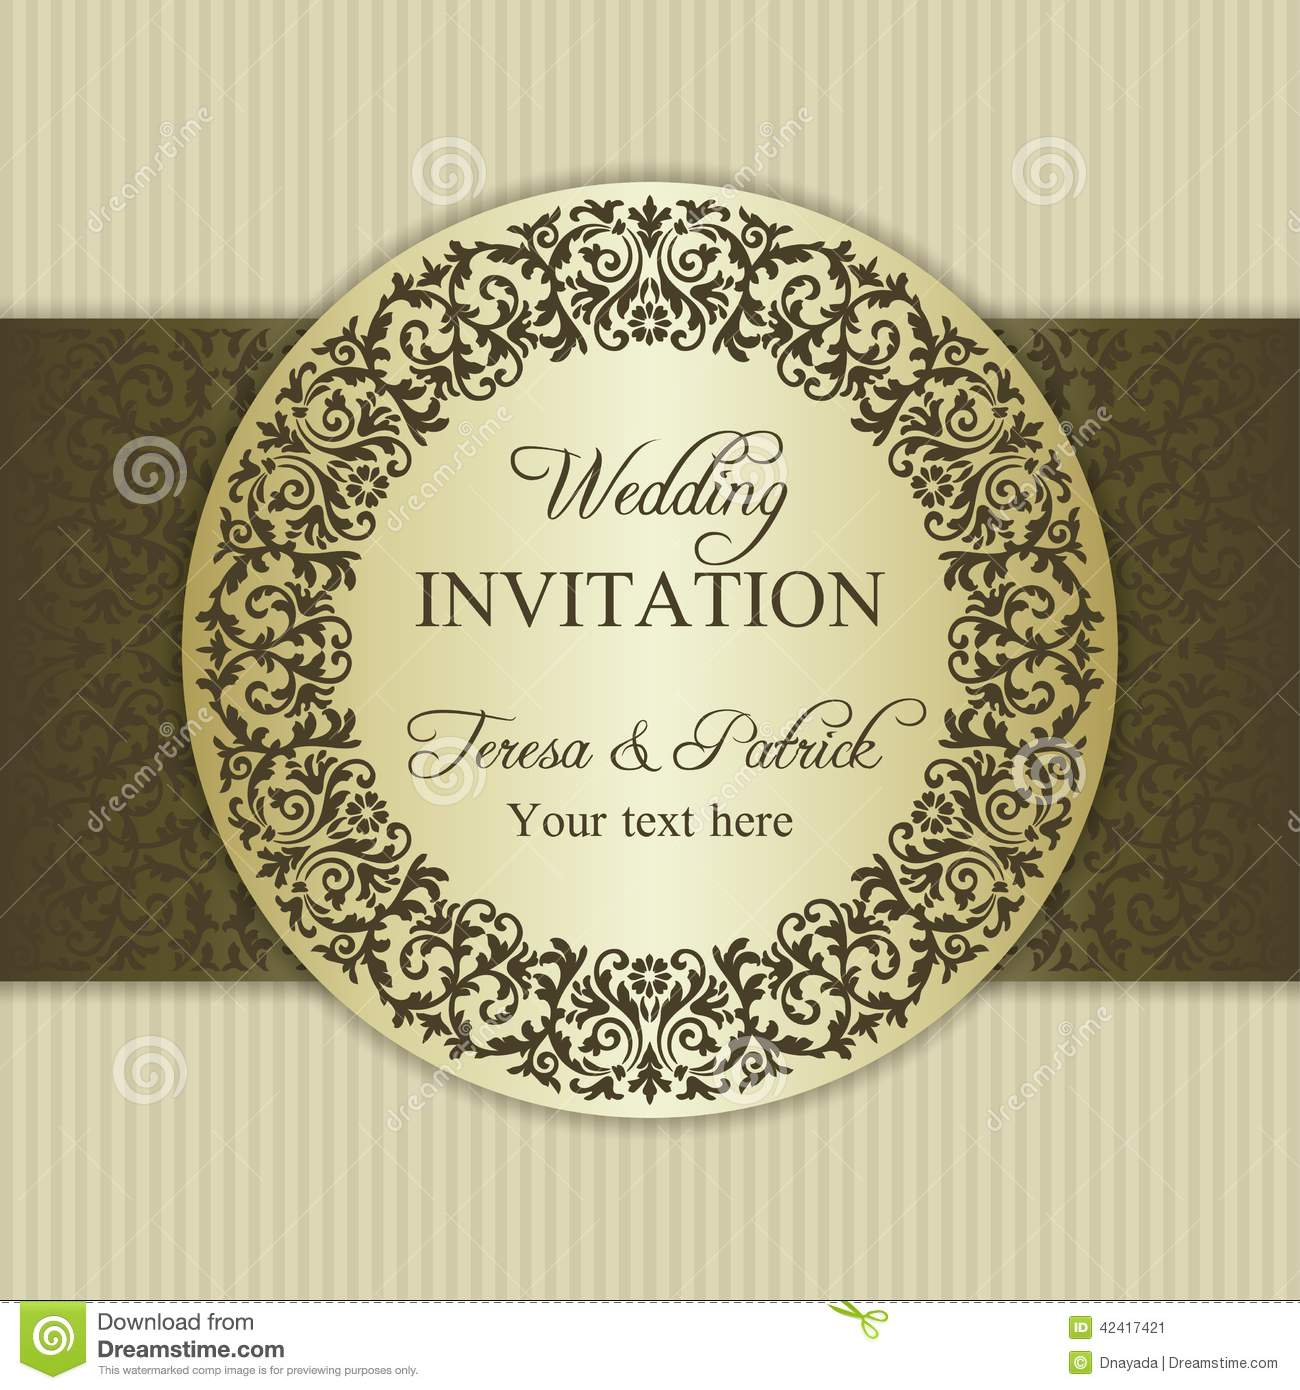 Baroque wedding invitation gold and beige stock vector baroque wedding invitation gold and beige decor flower stopboris Images